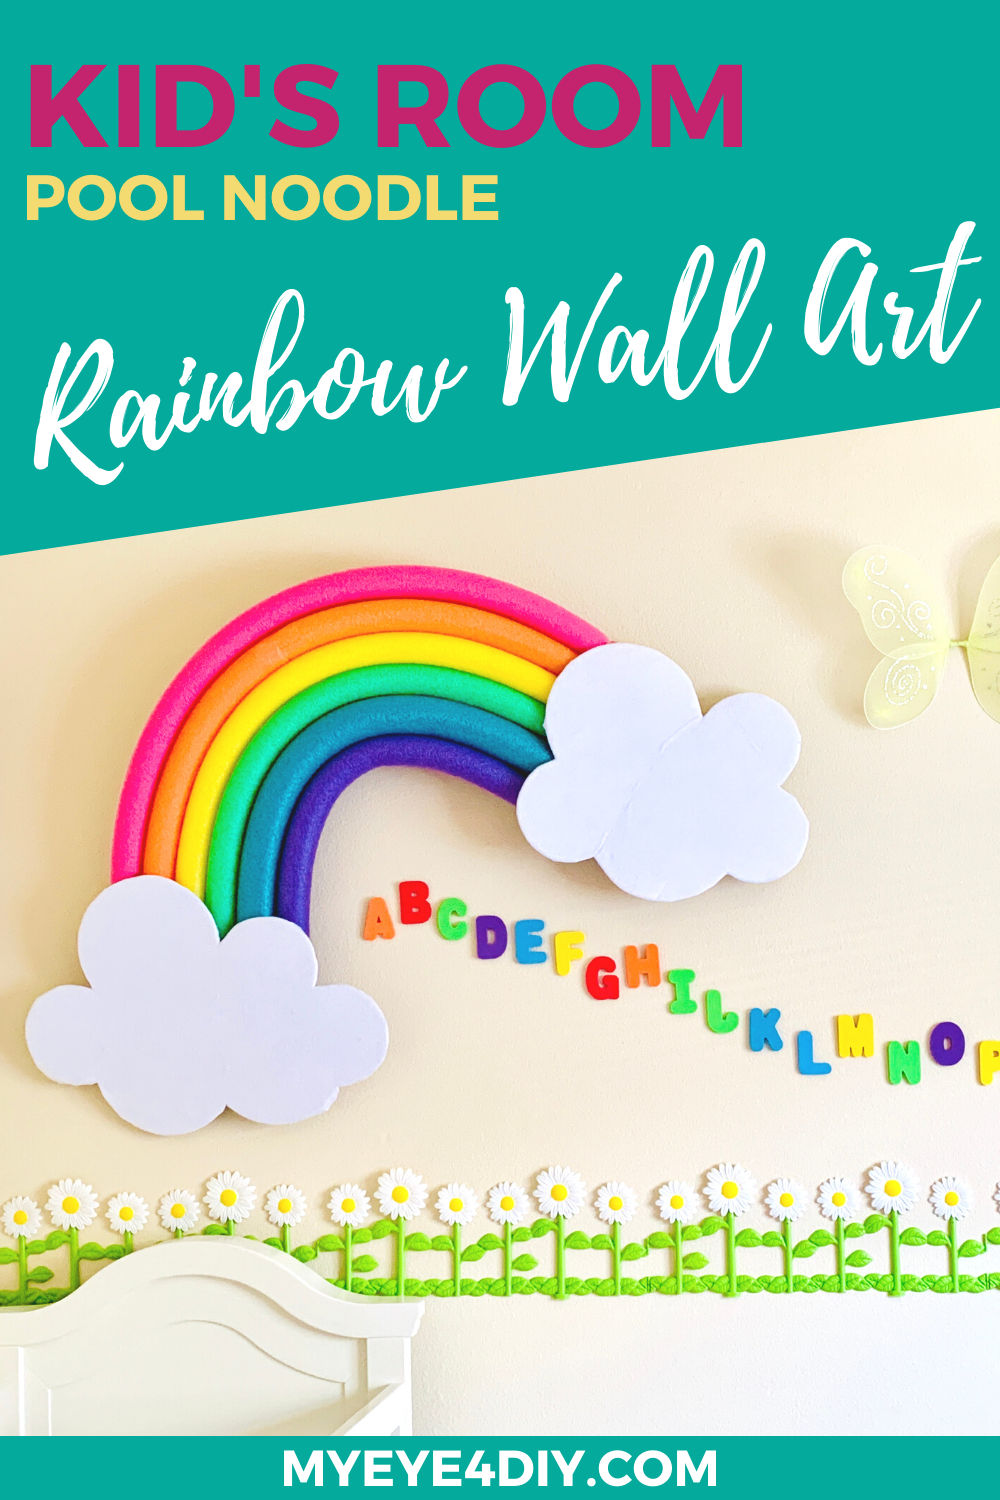 Pool Noodle Hacks - Rainbow Wall Art (1)